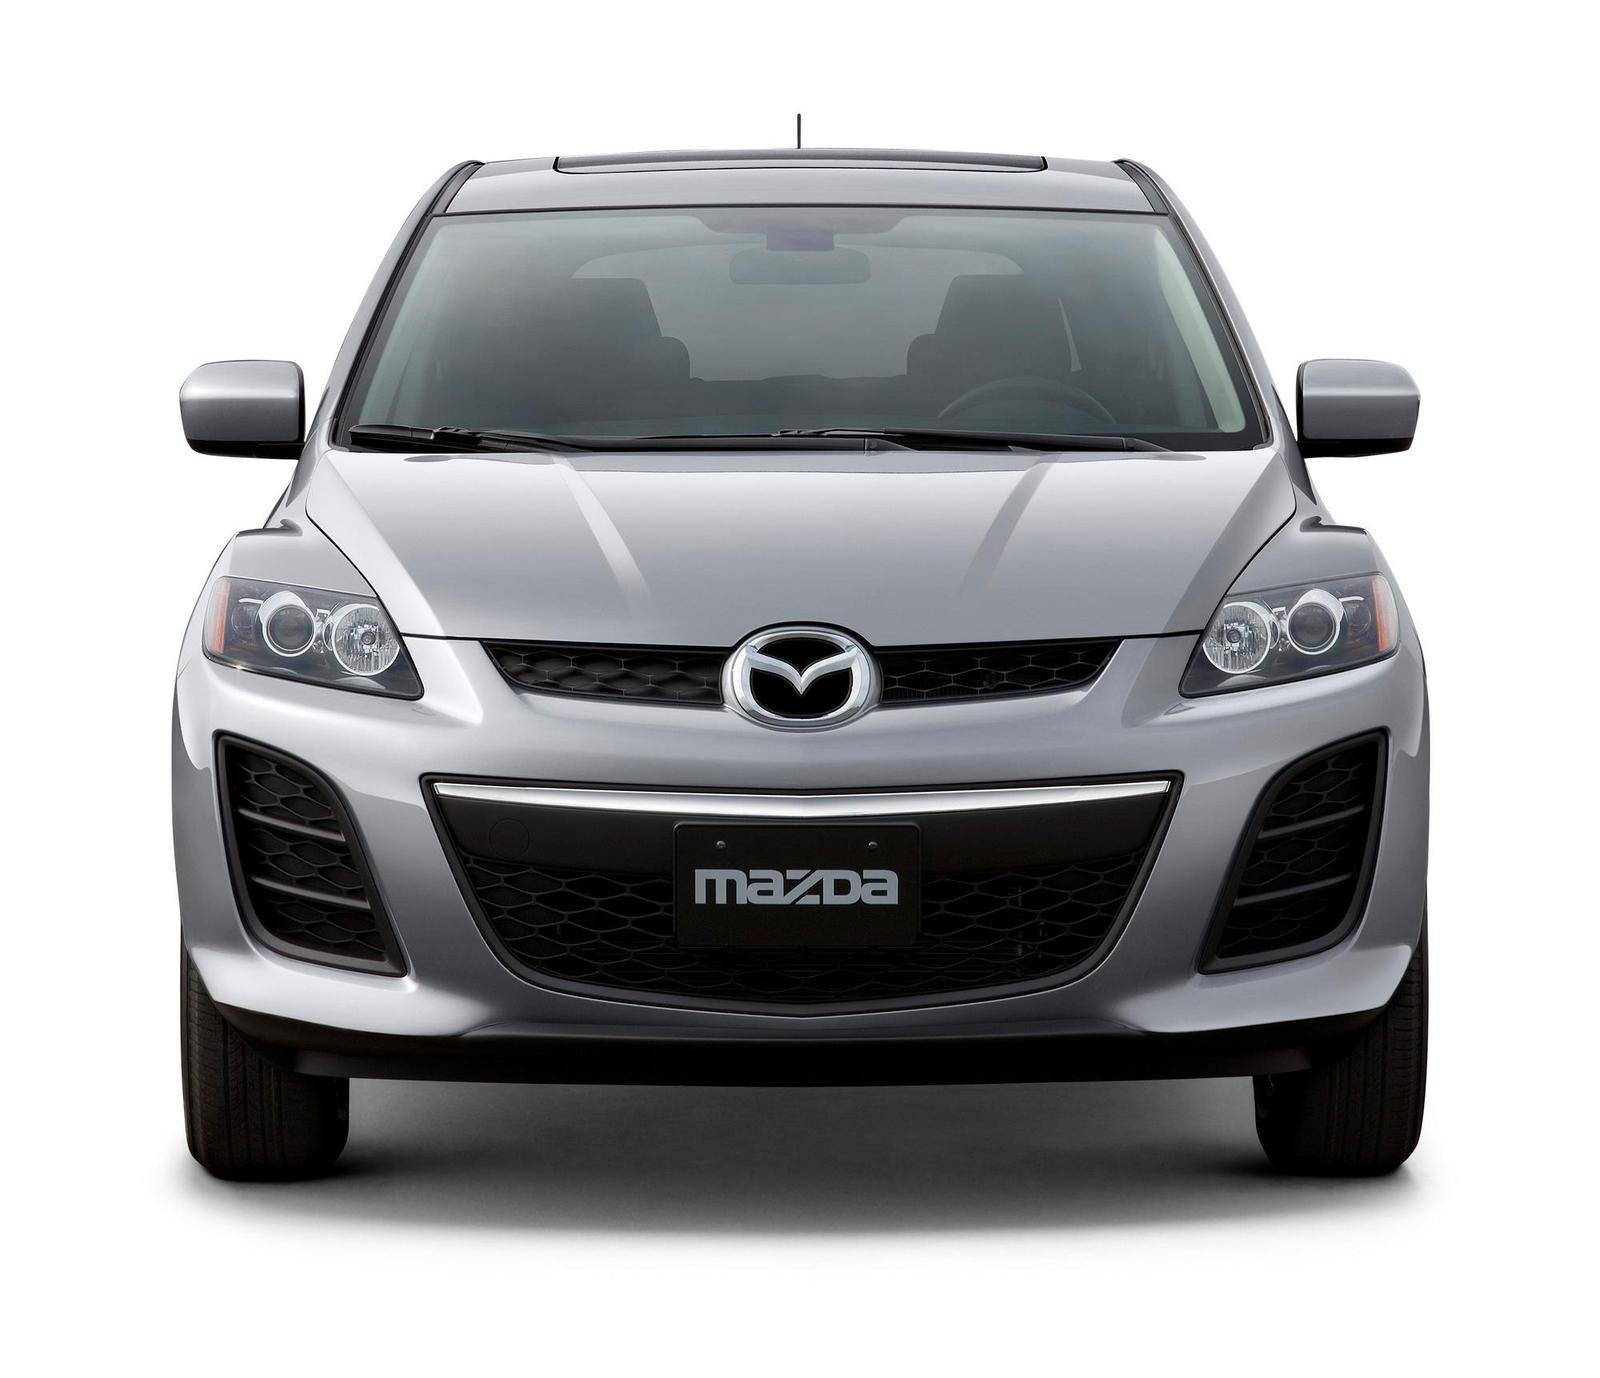 2010 mazda cx 7 picture 341178 car review top speed. Black Bedroom Furniture Sets. Home Design Ideas